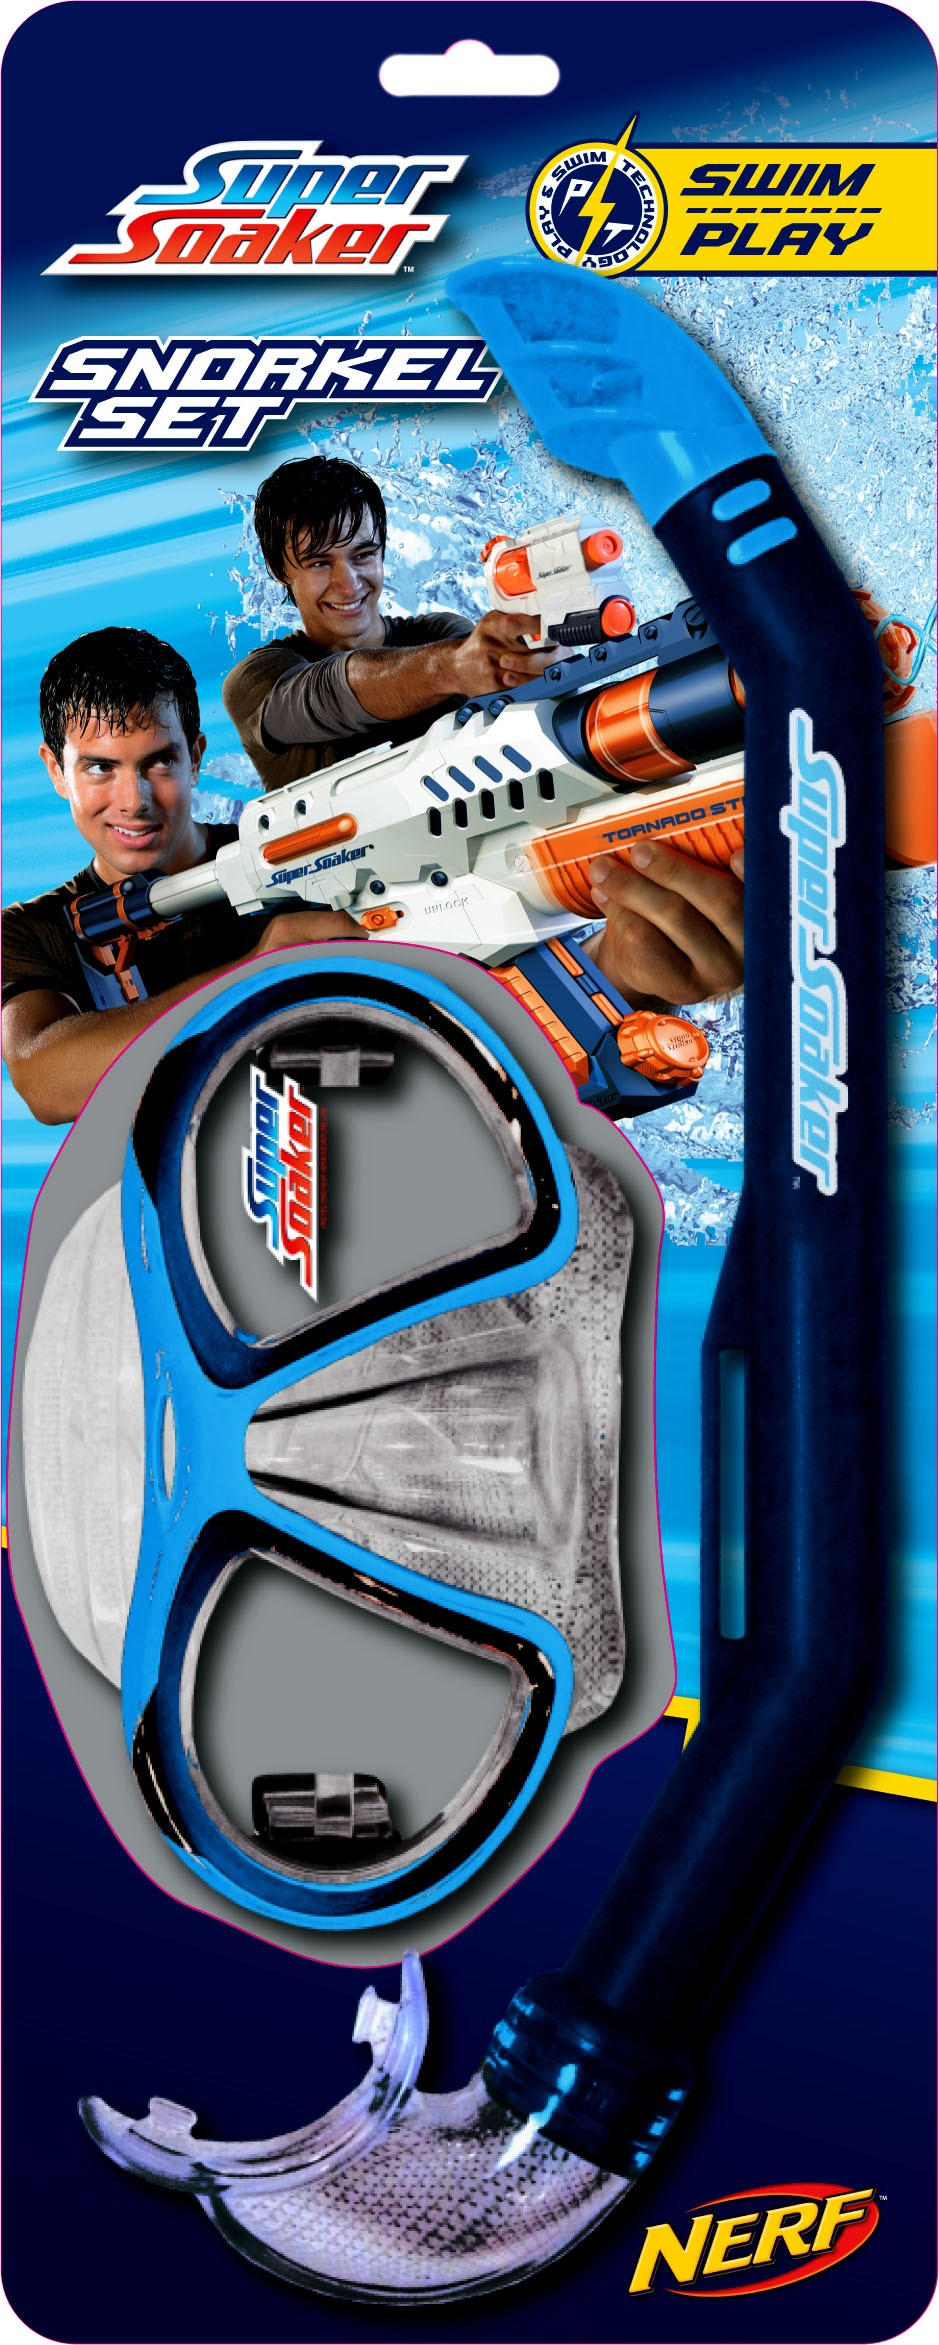 Super Soaker Snorkel Set